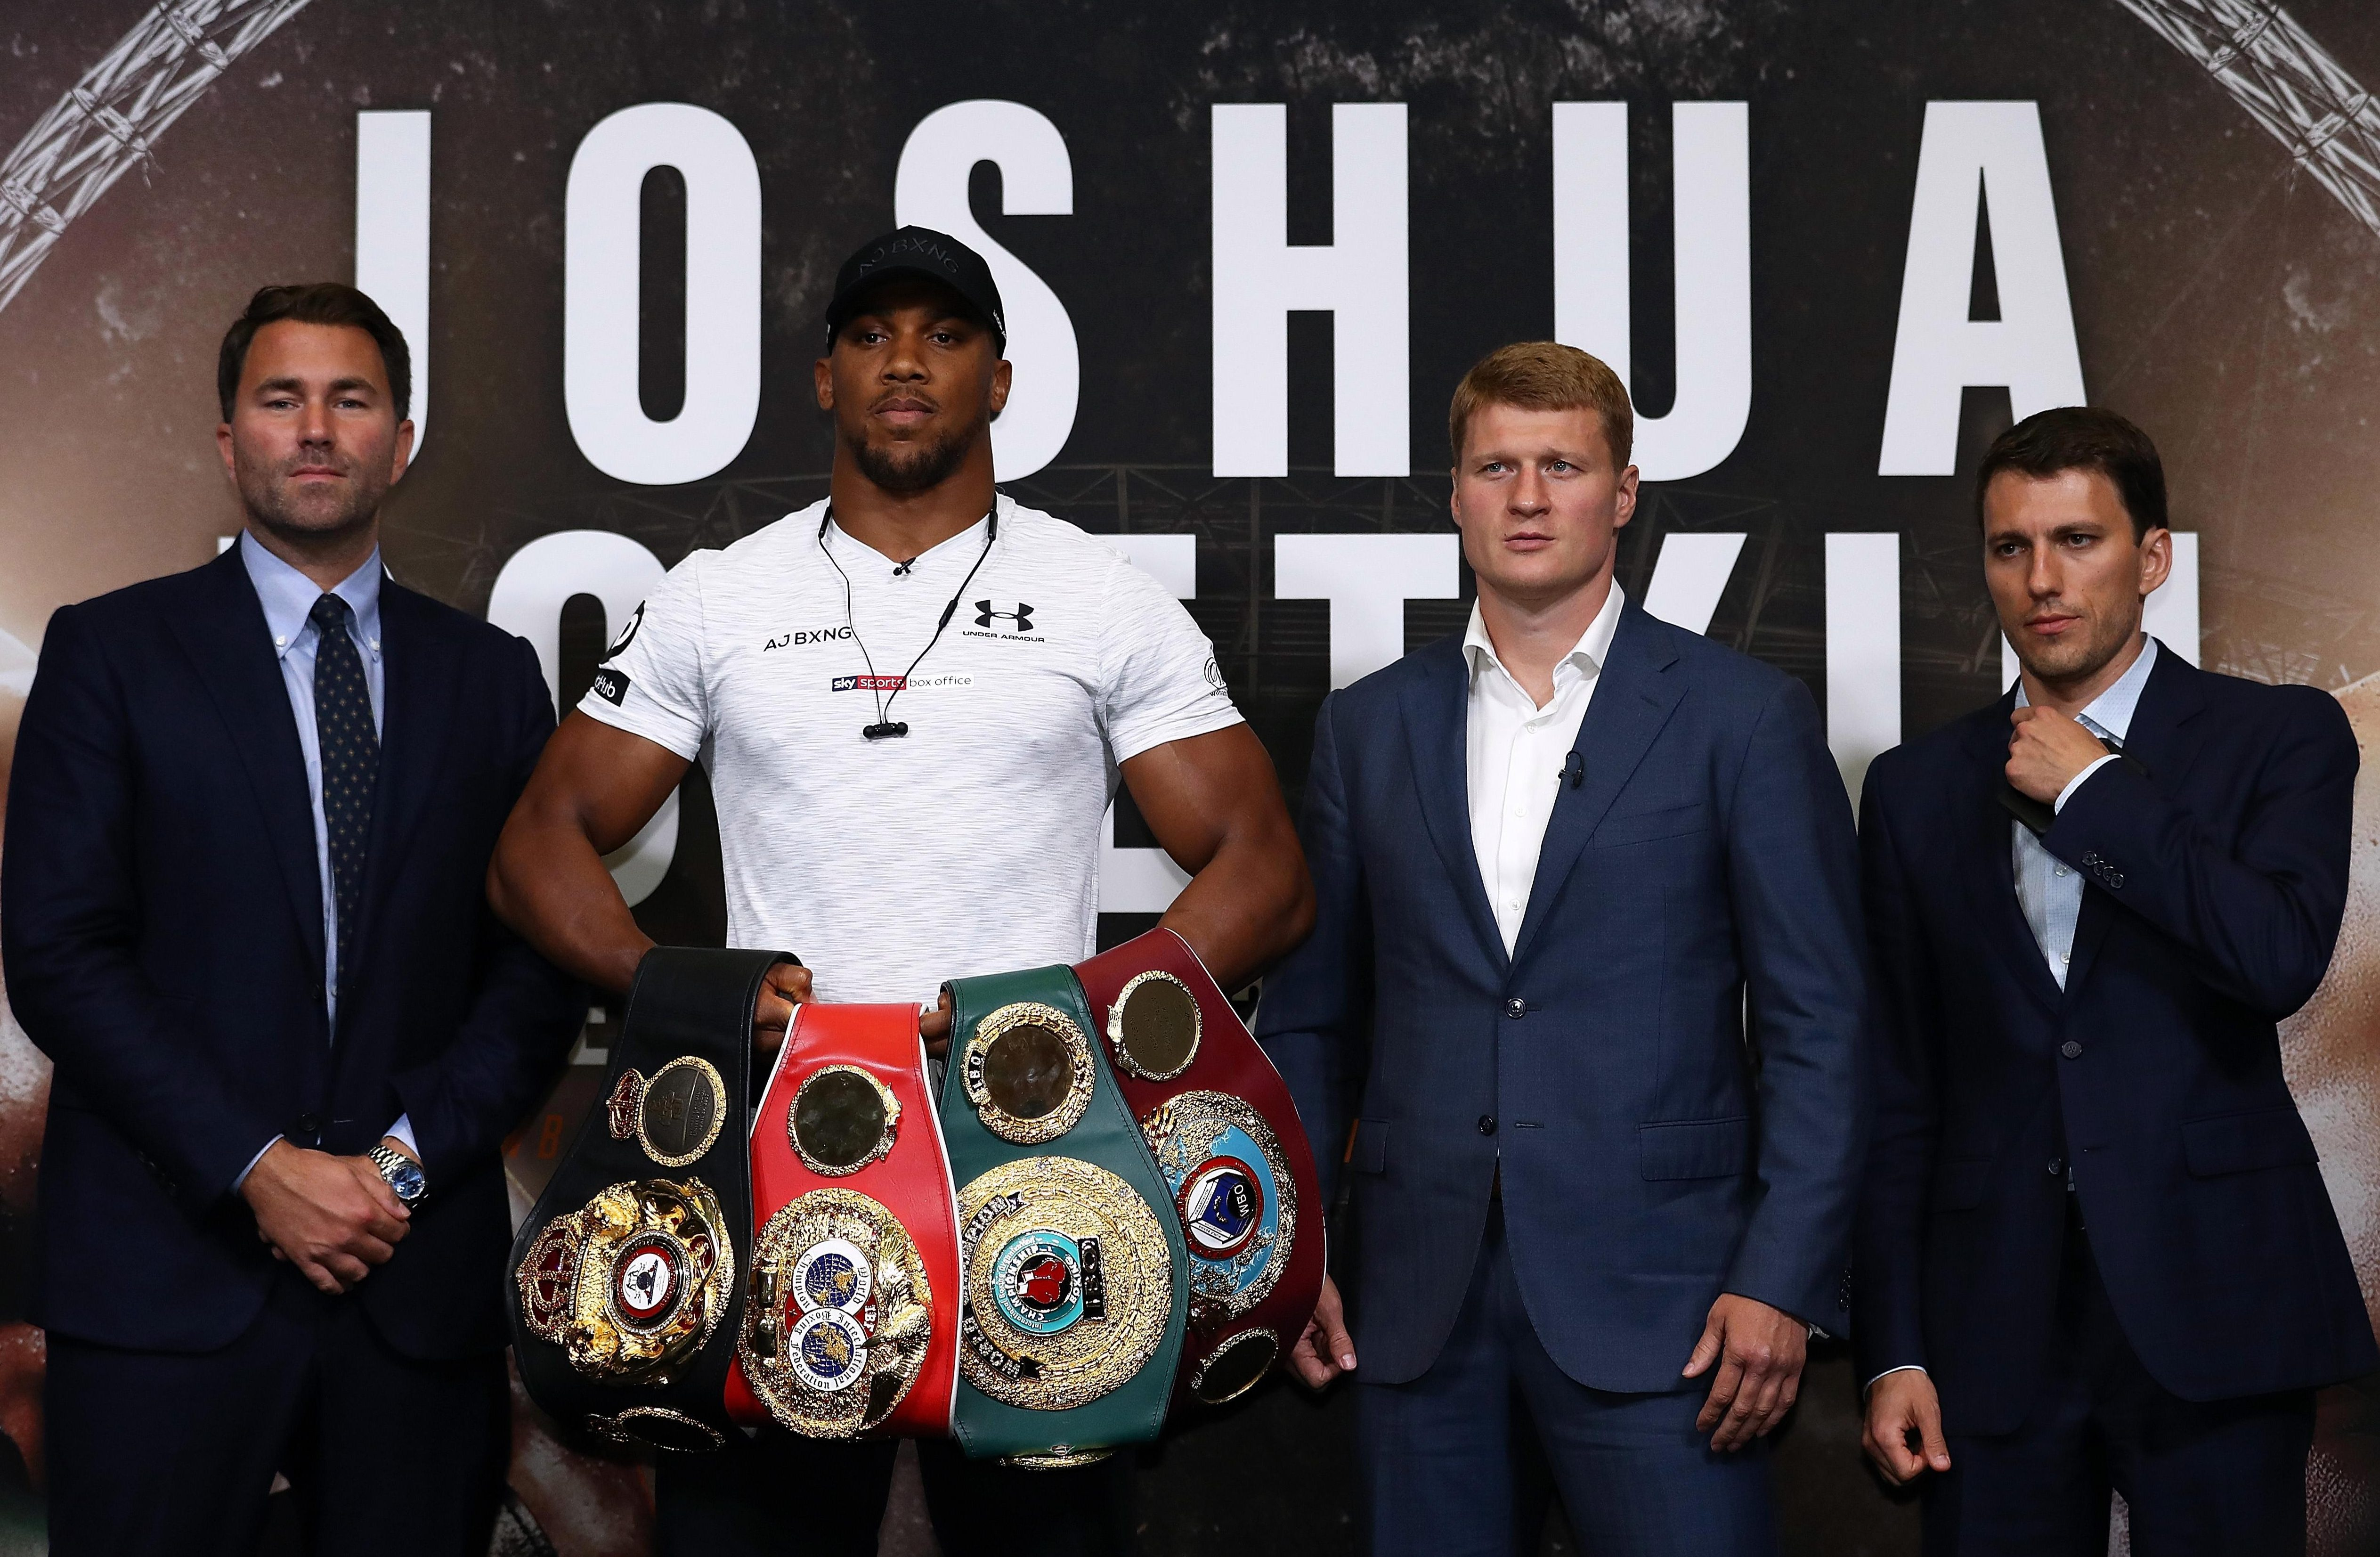 Anthony Joshua remains unbeaten heading into his mandatory fight with Alexander Povetkin, but could be overshadowed by Deontay Wilder and Tyson Fury